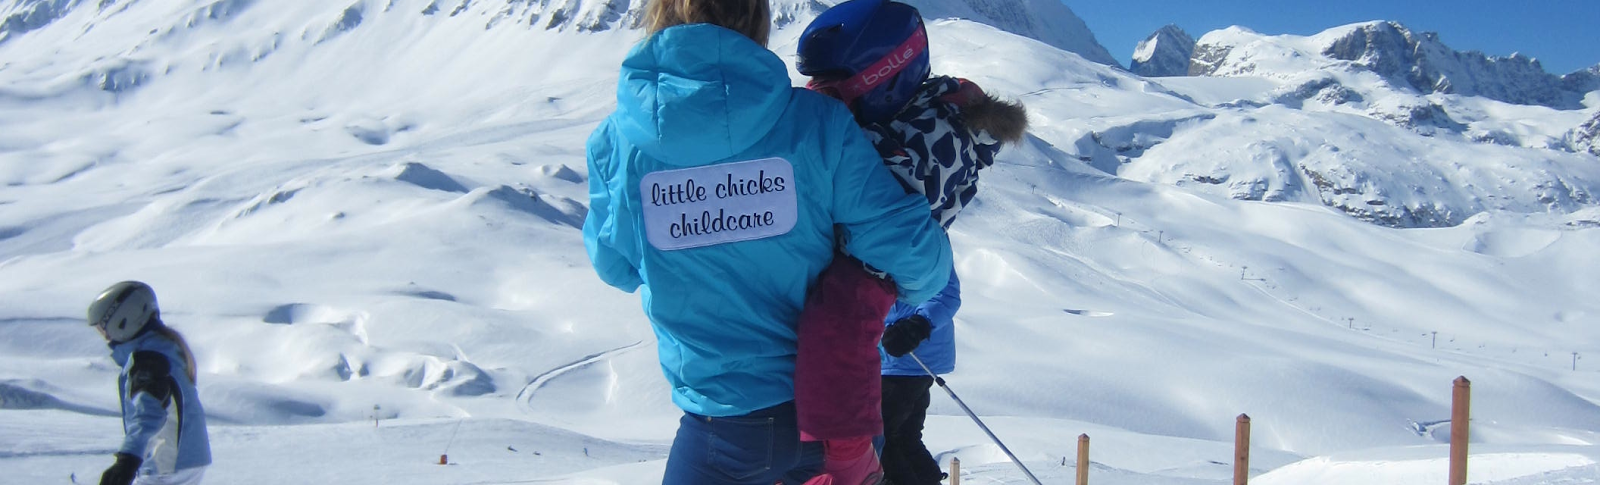 val d'isere childcare MERIBEL